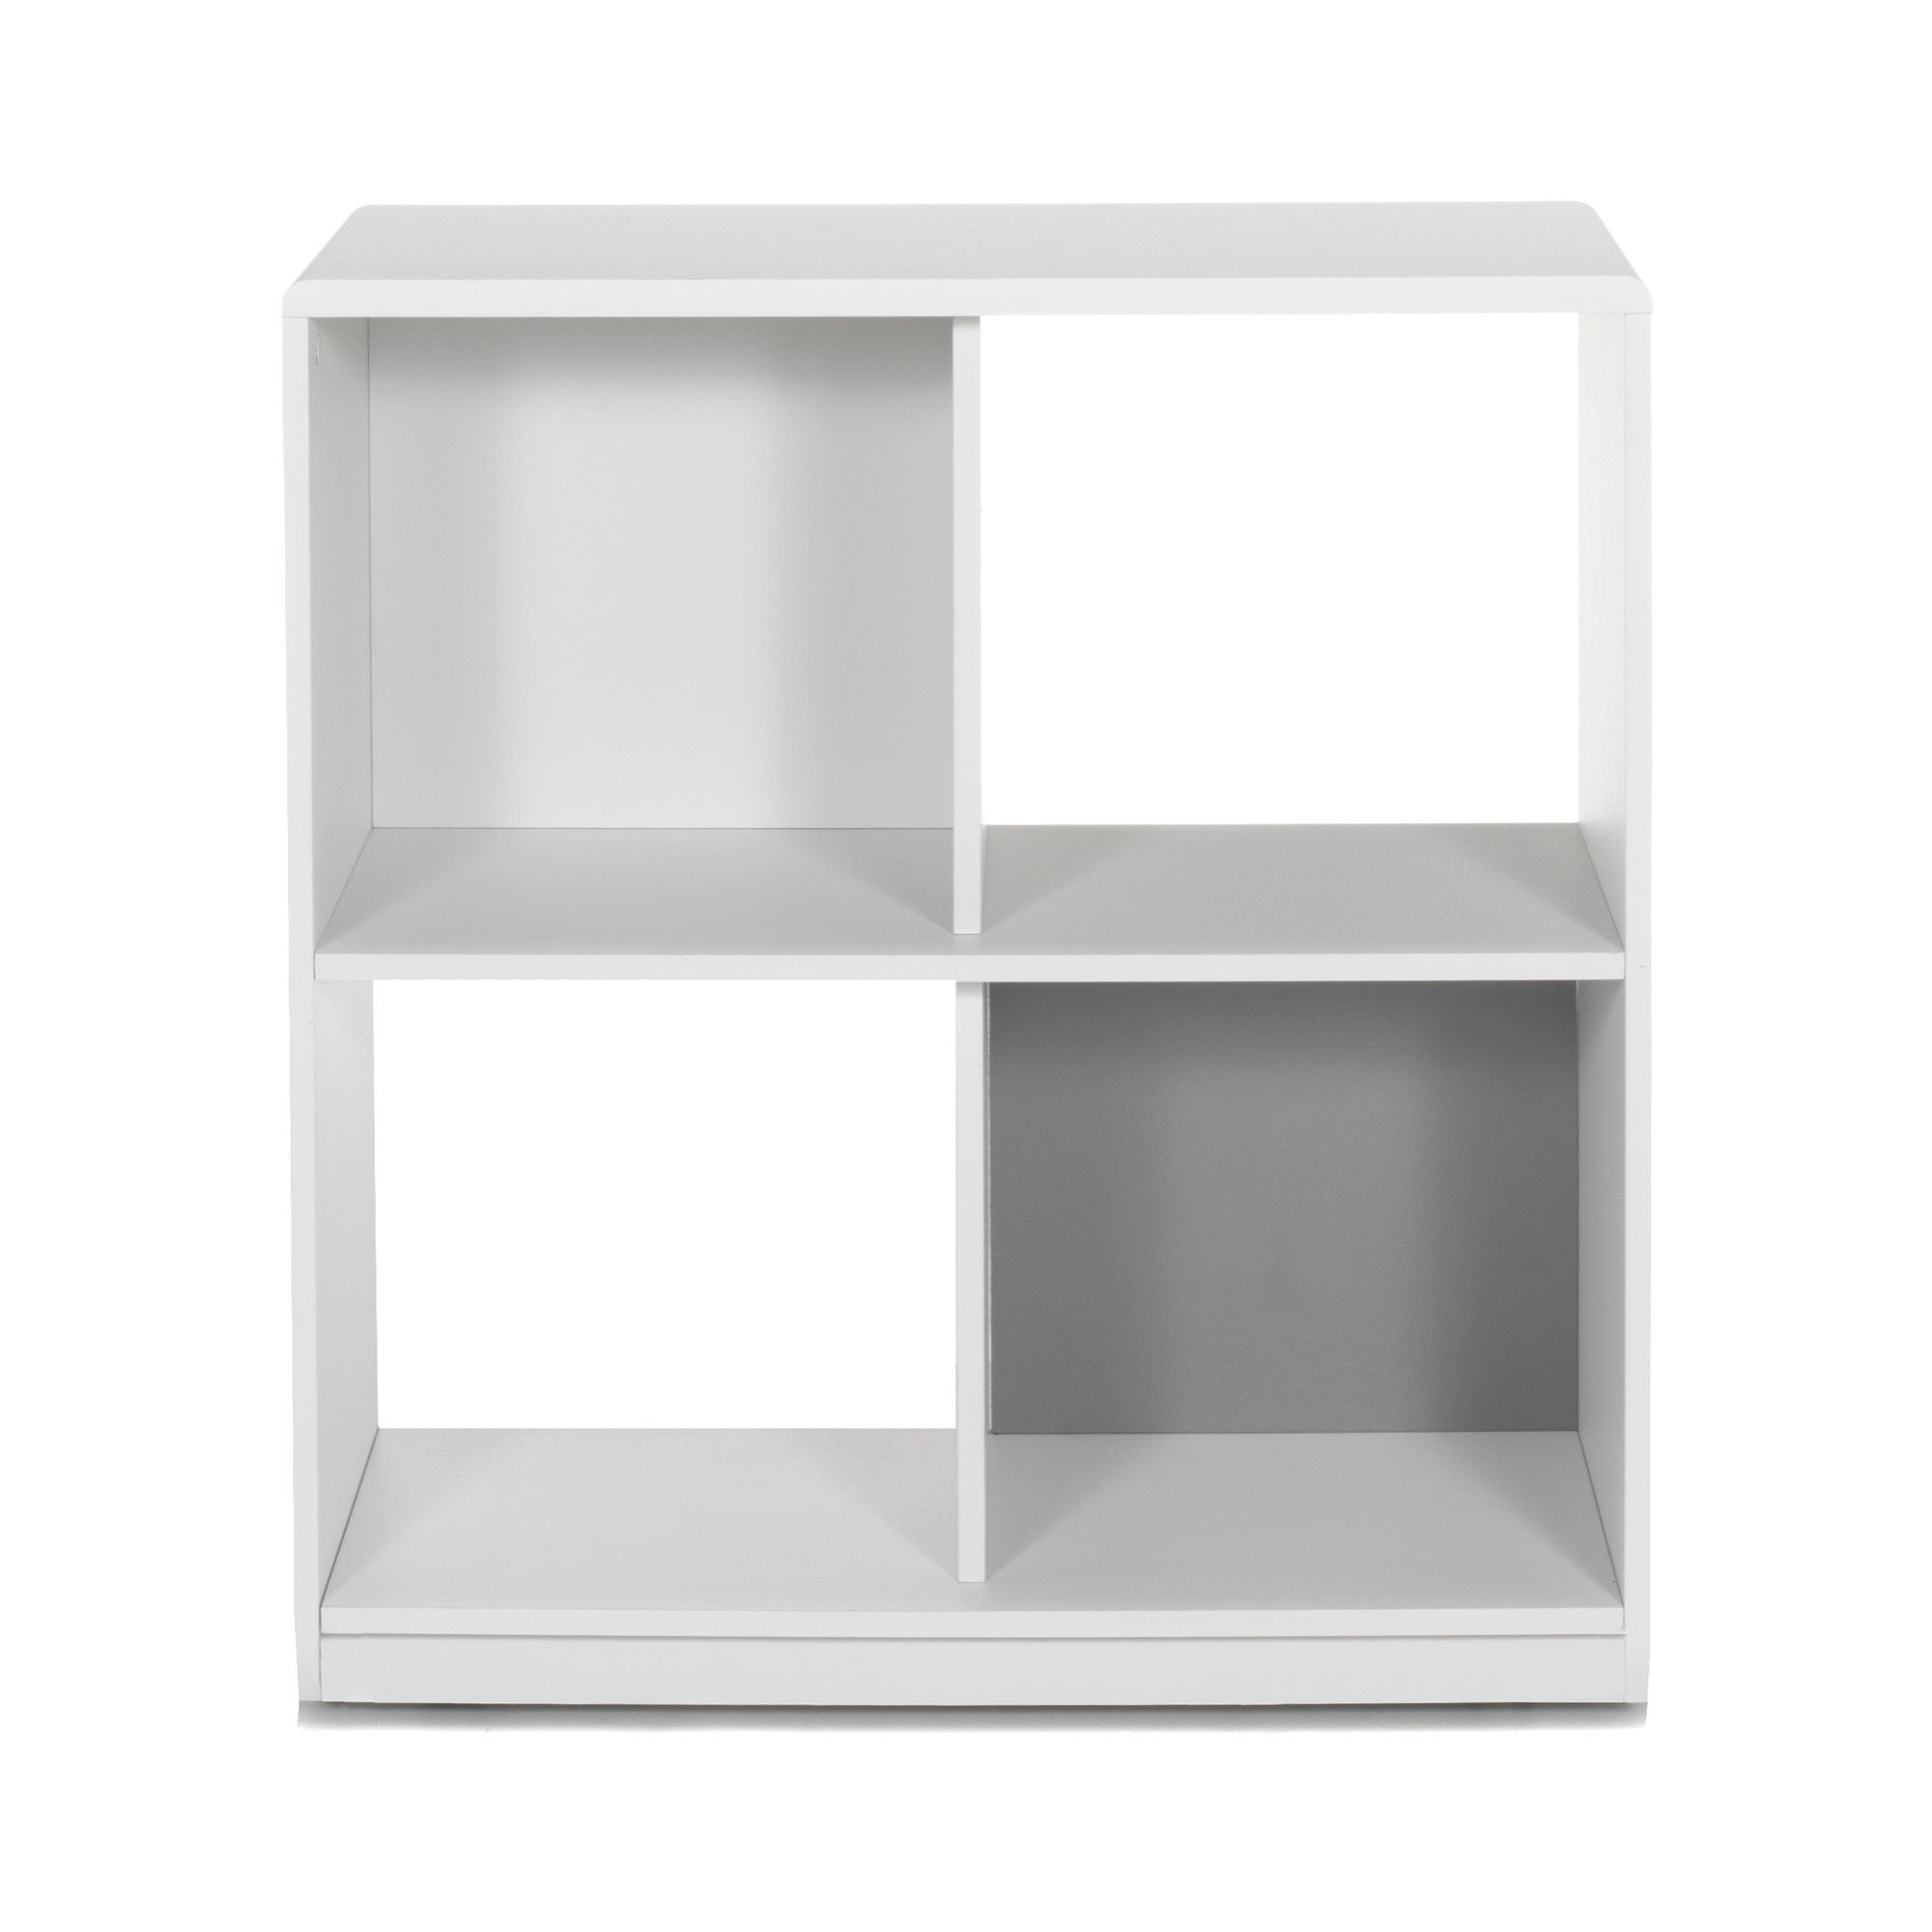 meuble de rangement 4 cases sur roulettes blanc blanc r versible argent cool les tag res. Black Bedroom Furniture Sets. Home Design Ideas